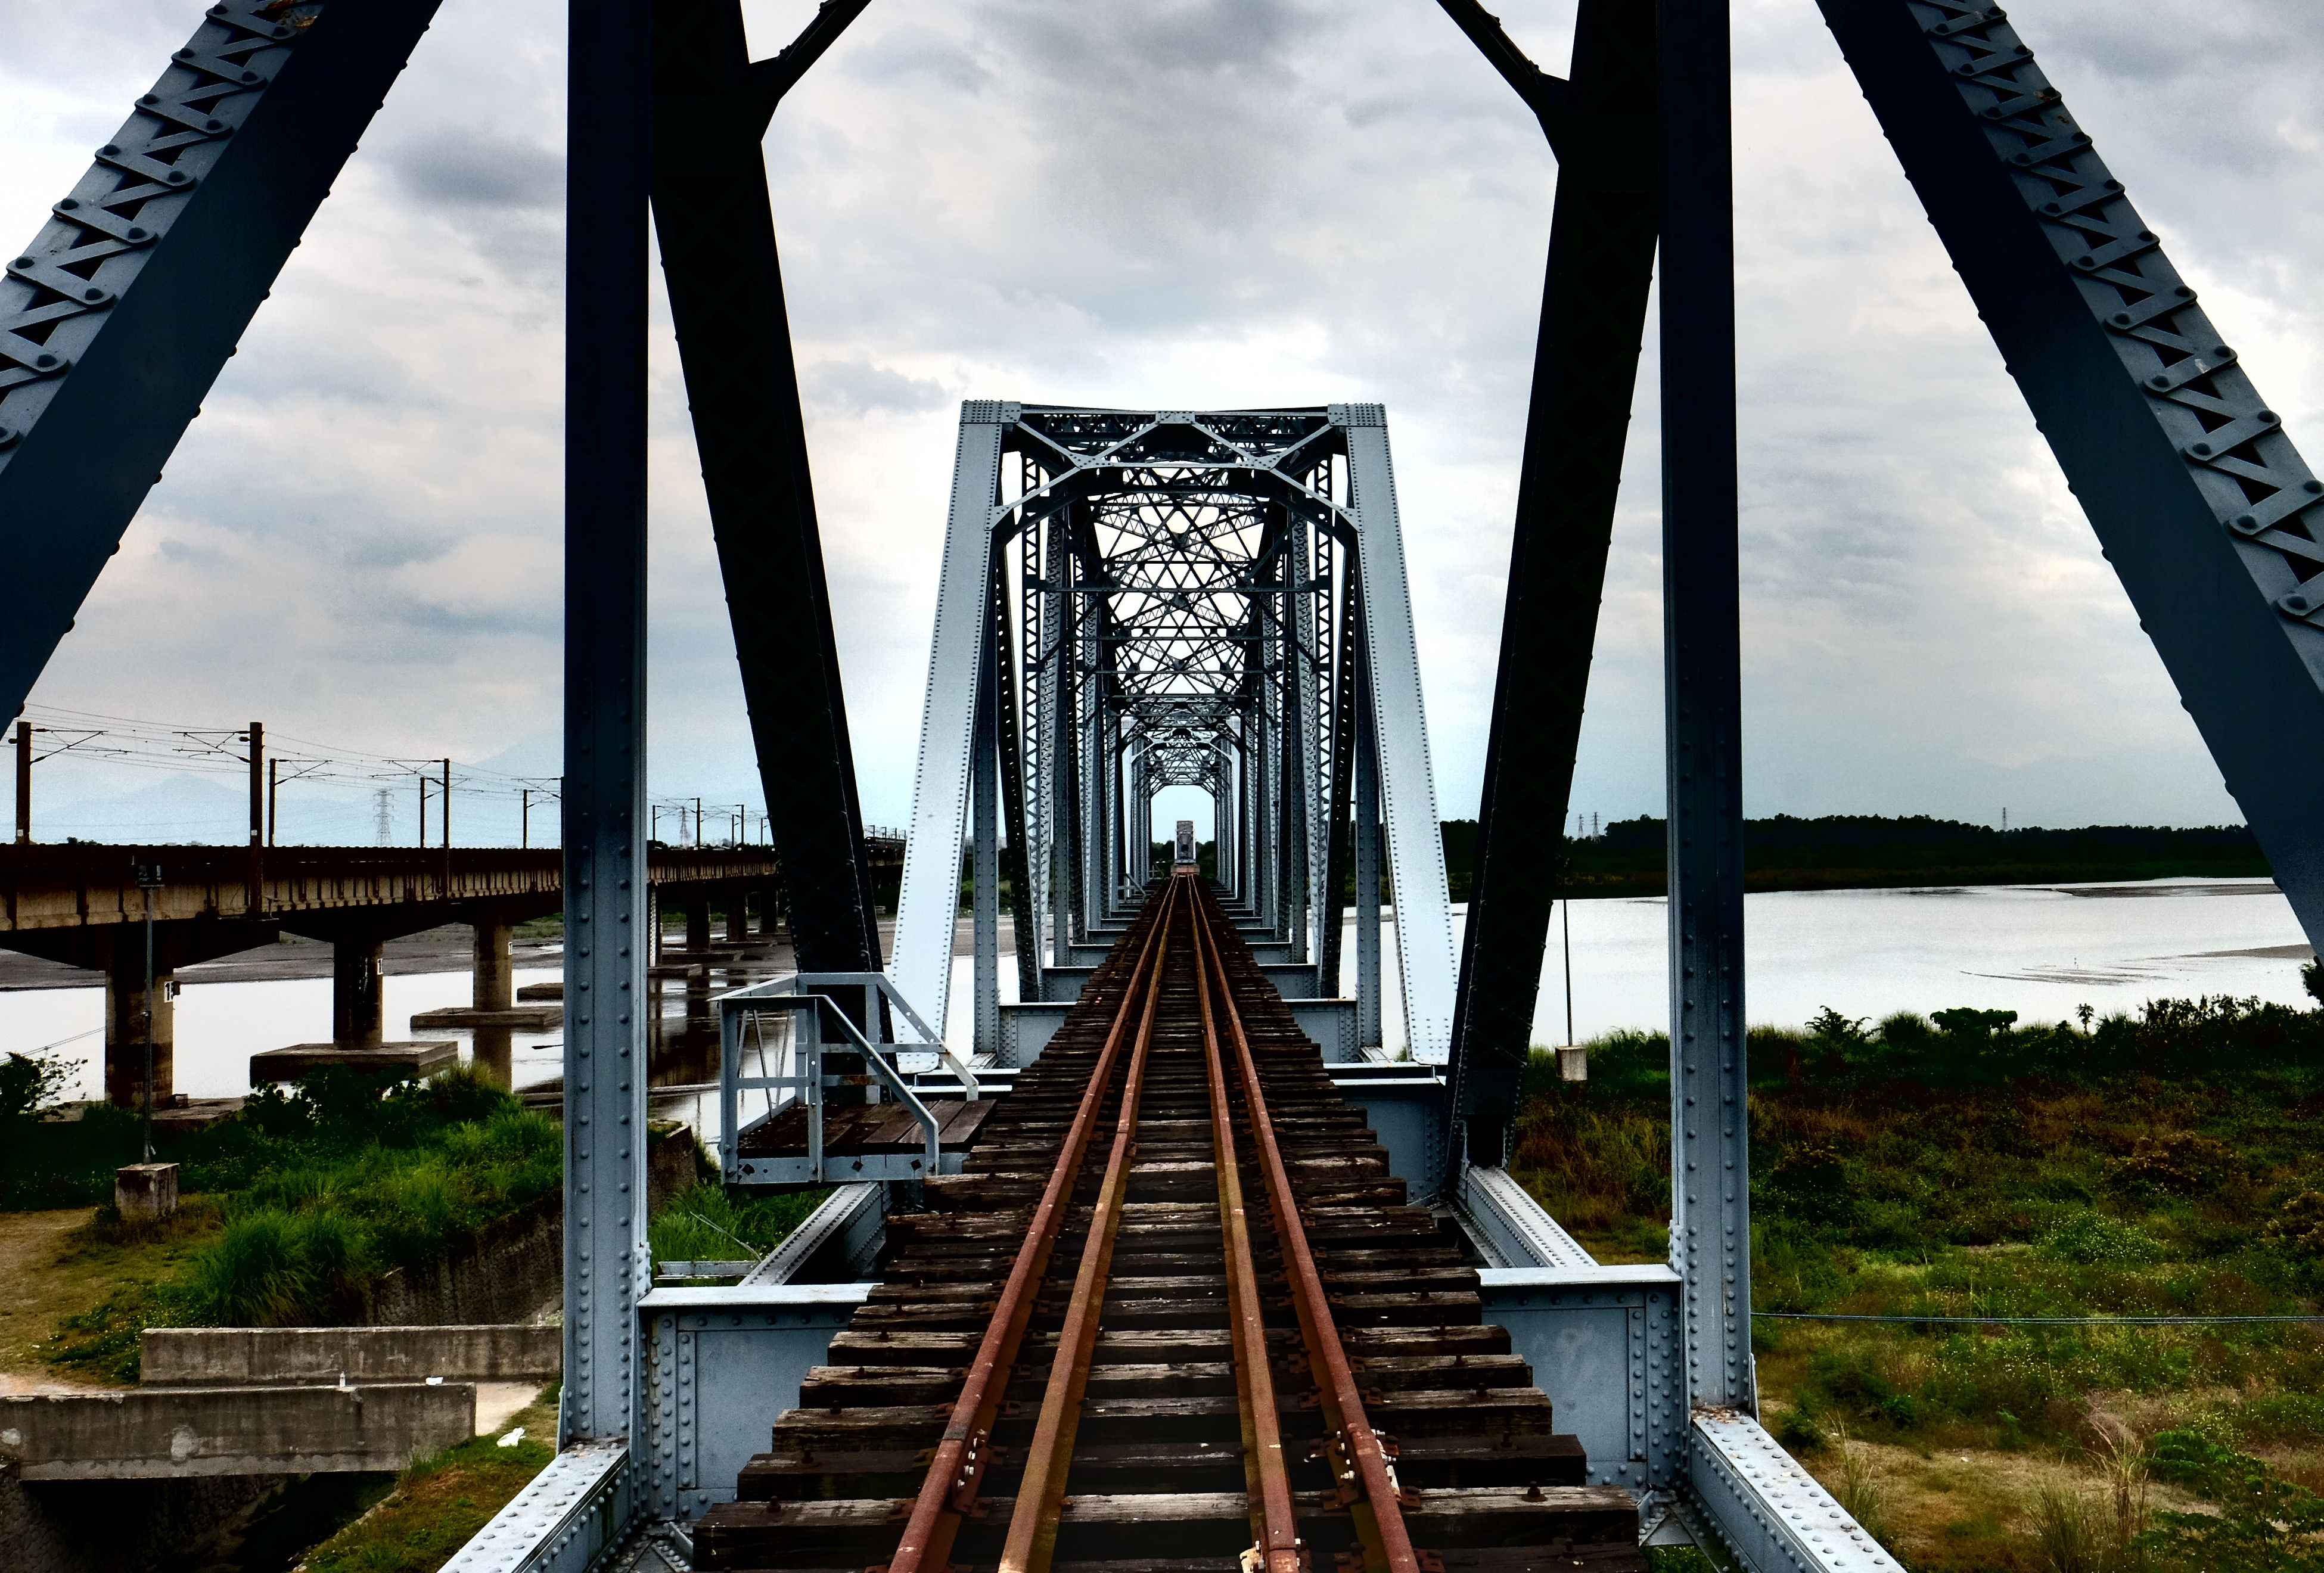 built structure, architecture, connection, bridge - man made structure, sky, engineering, the way forward, diminishing perspective, cloud - sky, vanishing point, cloud, cloudy, metallic, railway bridge, long, travel destinations, outdoors, no people, day, tourism, nature